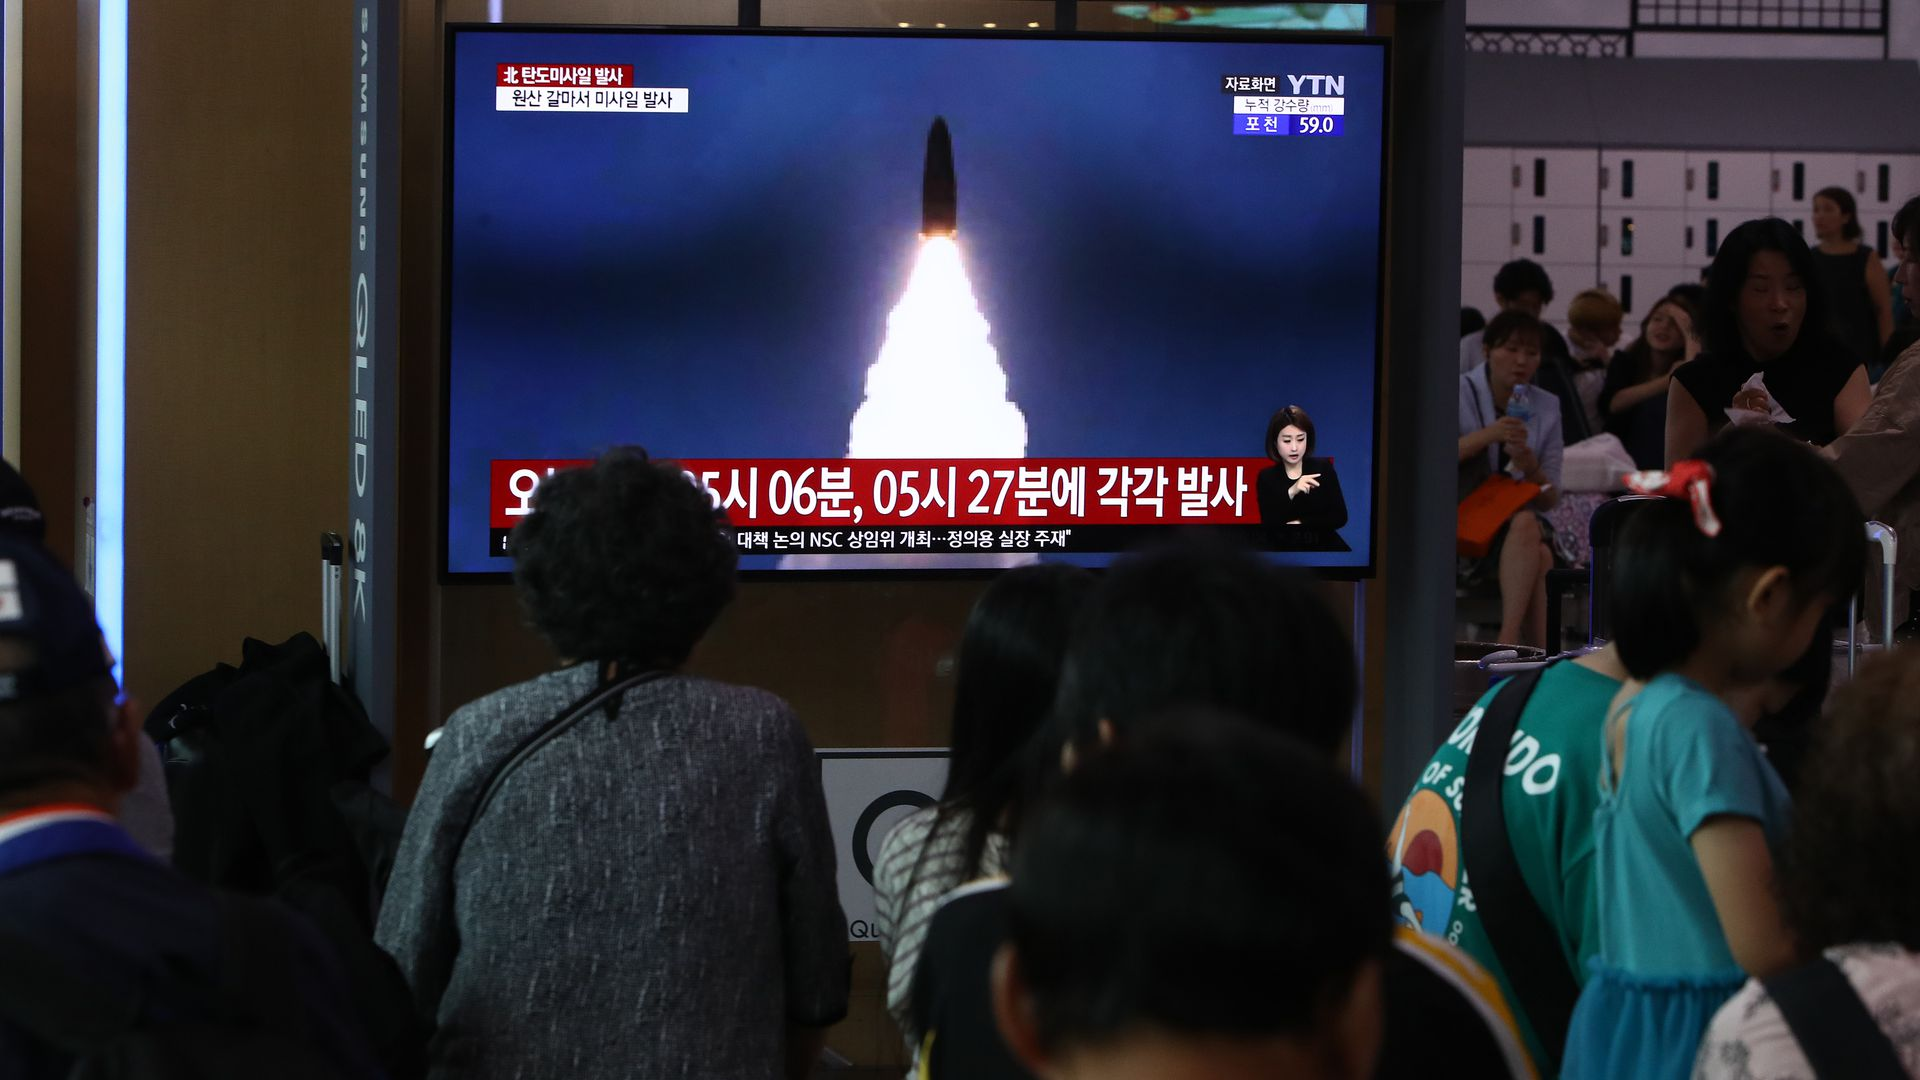 North Koreans watching missile test